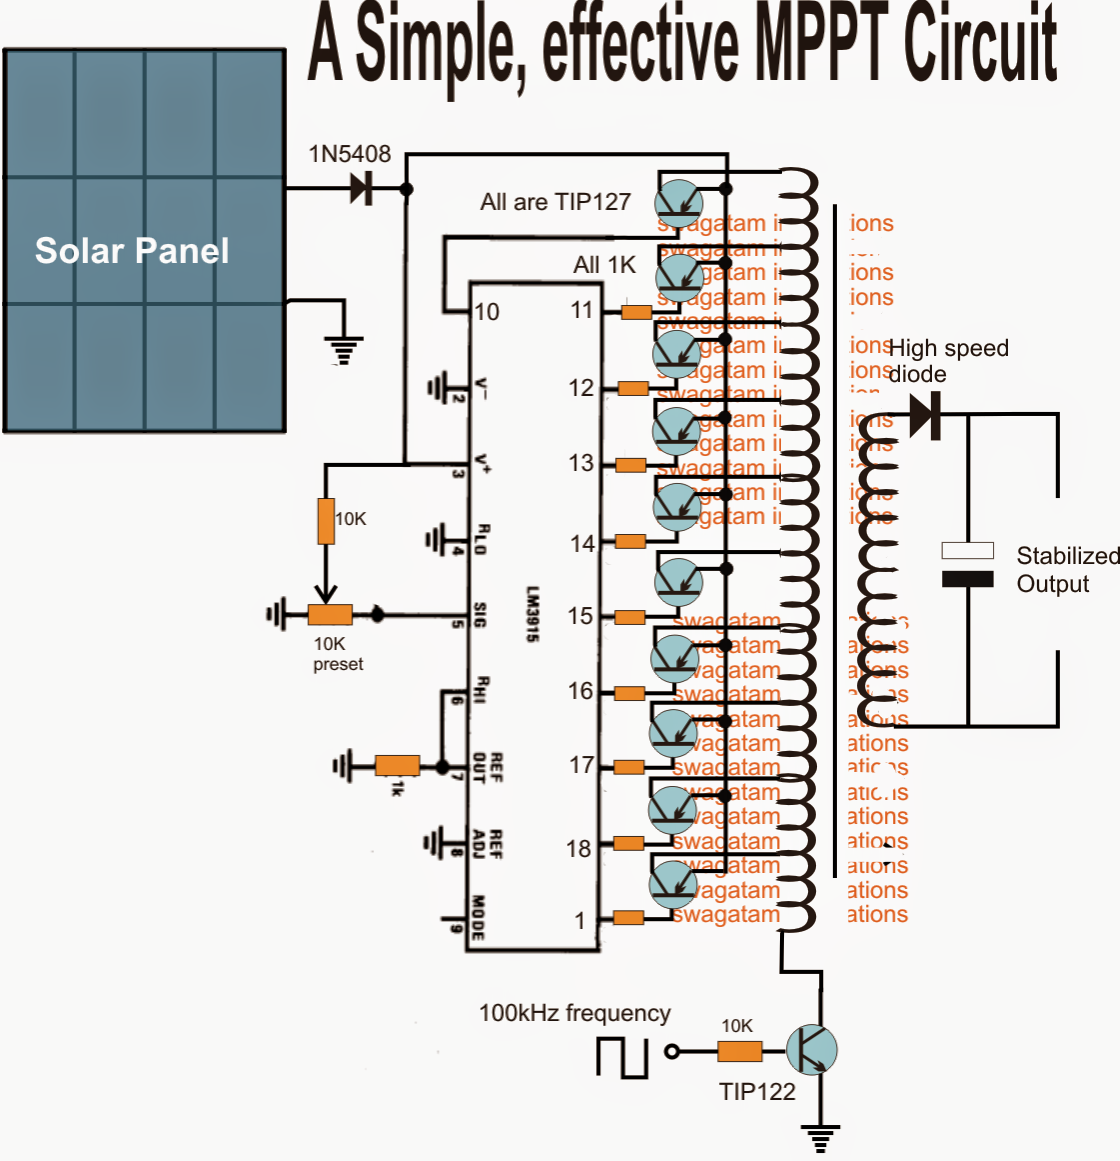 solar panel regulator wiring diagram uk caravan trailer plug homemade mppt circuit poor man 39s maximum power